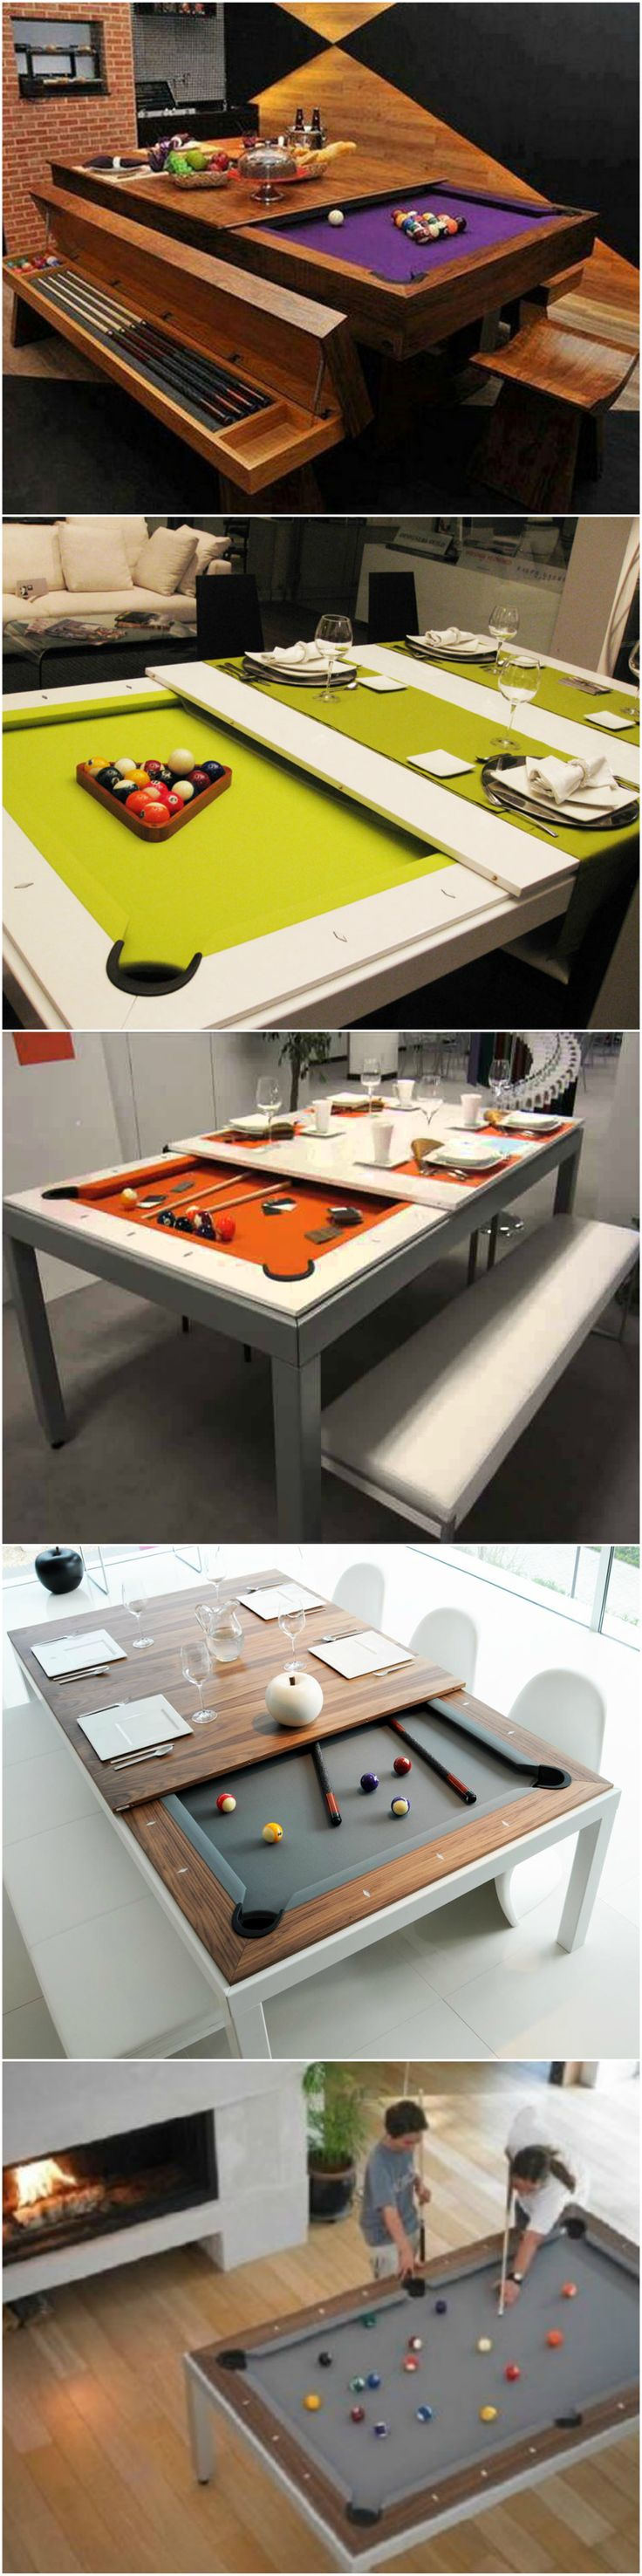 The Fusion table creates a relaxed atmosphere for dinner with family or friends. Able to seat 10 people comfortably, the Fusion table is perfect for family or professional meetings. After the meal, it takes less than a minute to turn the Fusion table into a top-of-the-range billiard table.